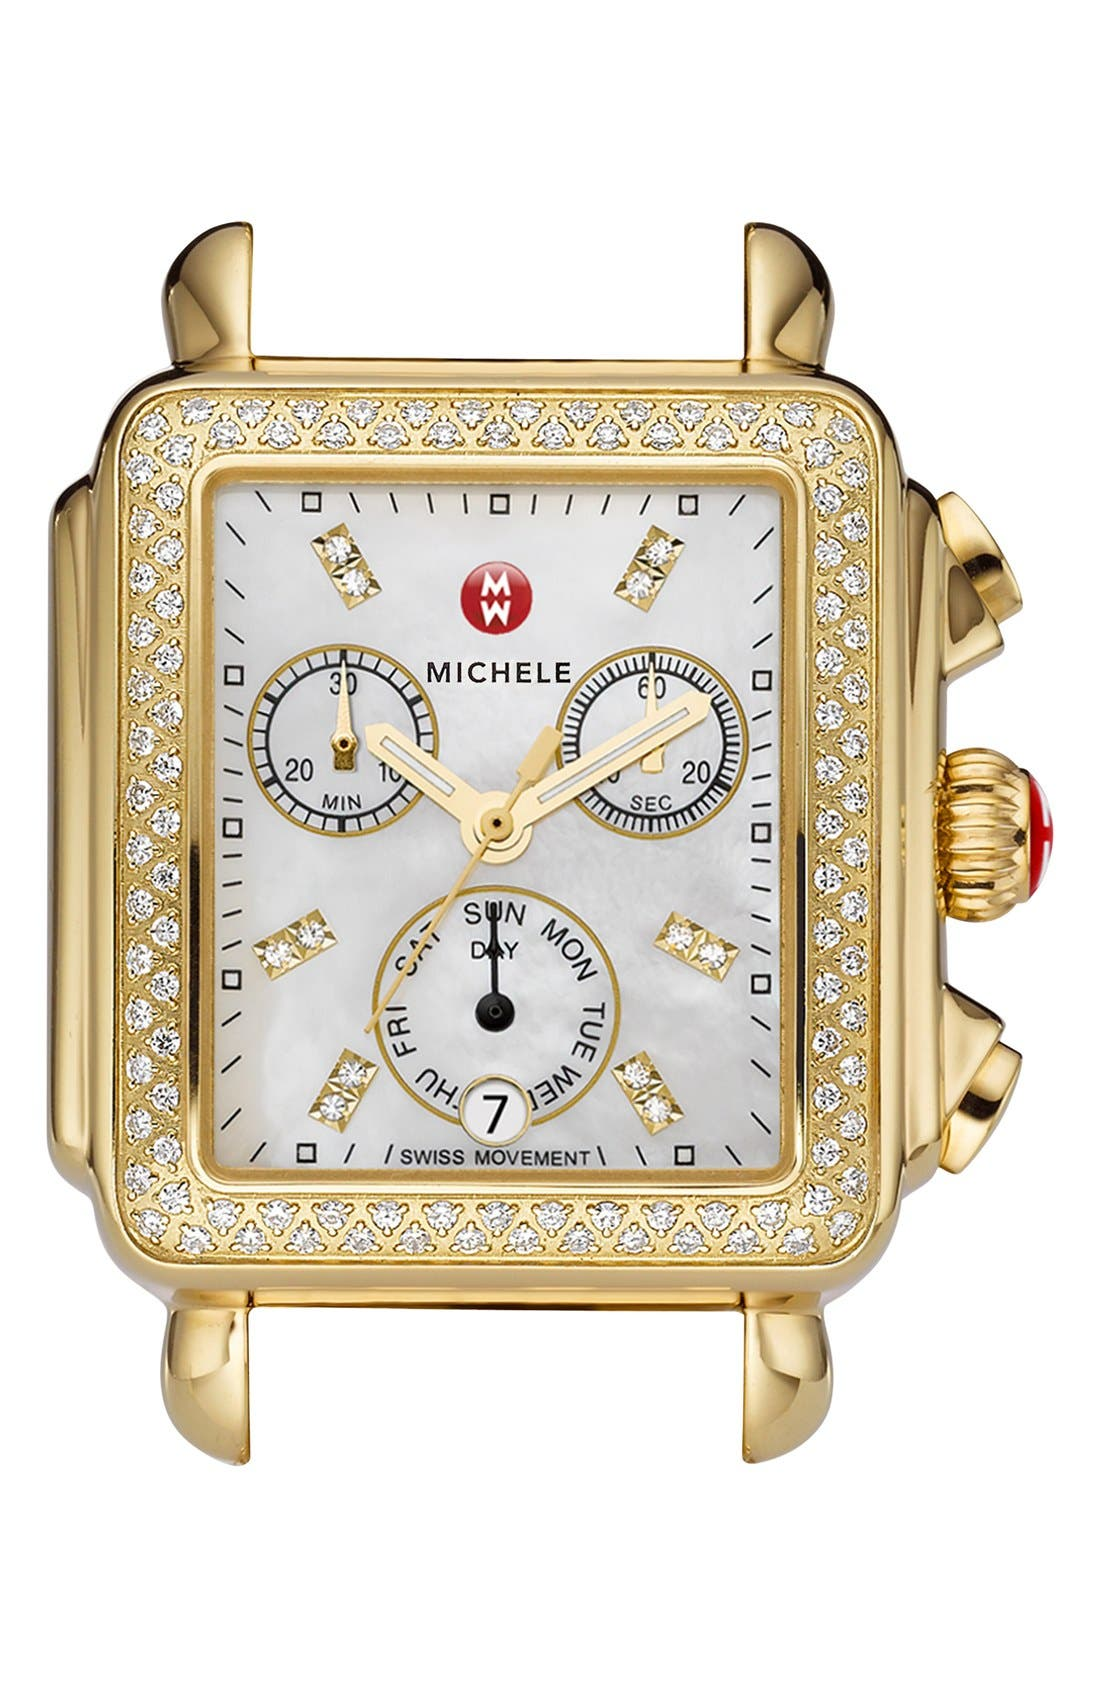 Alternate Image 1 Selected - MICHELE Deco Diamond Diamond Dial Gold Plated Watch Case, 33mm x 35mm